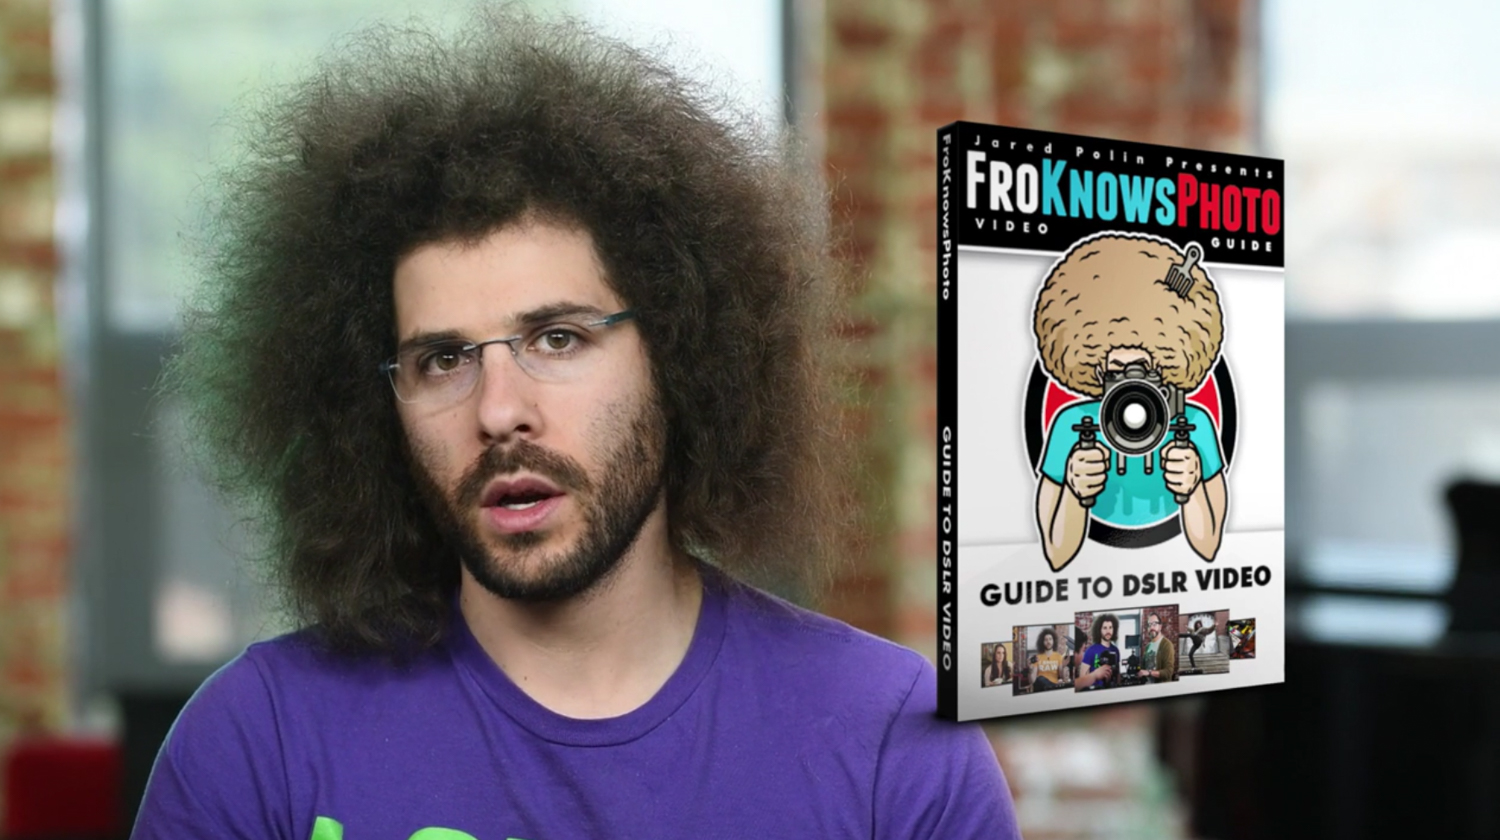 FroKnowsPhoto 6-Hour Guide to DSLR Video